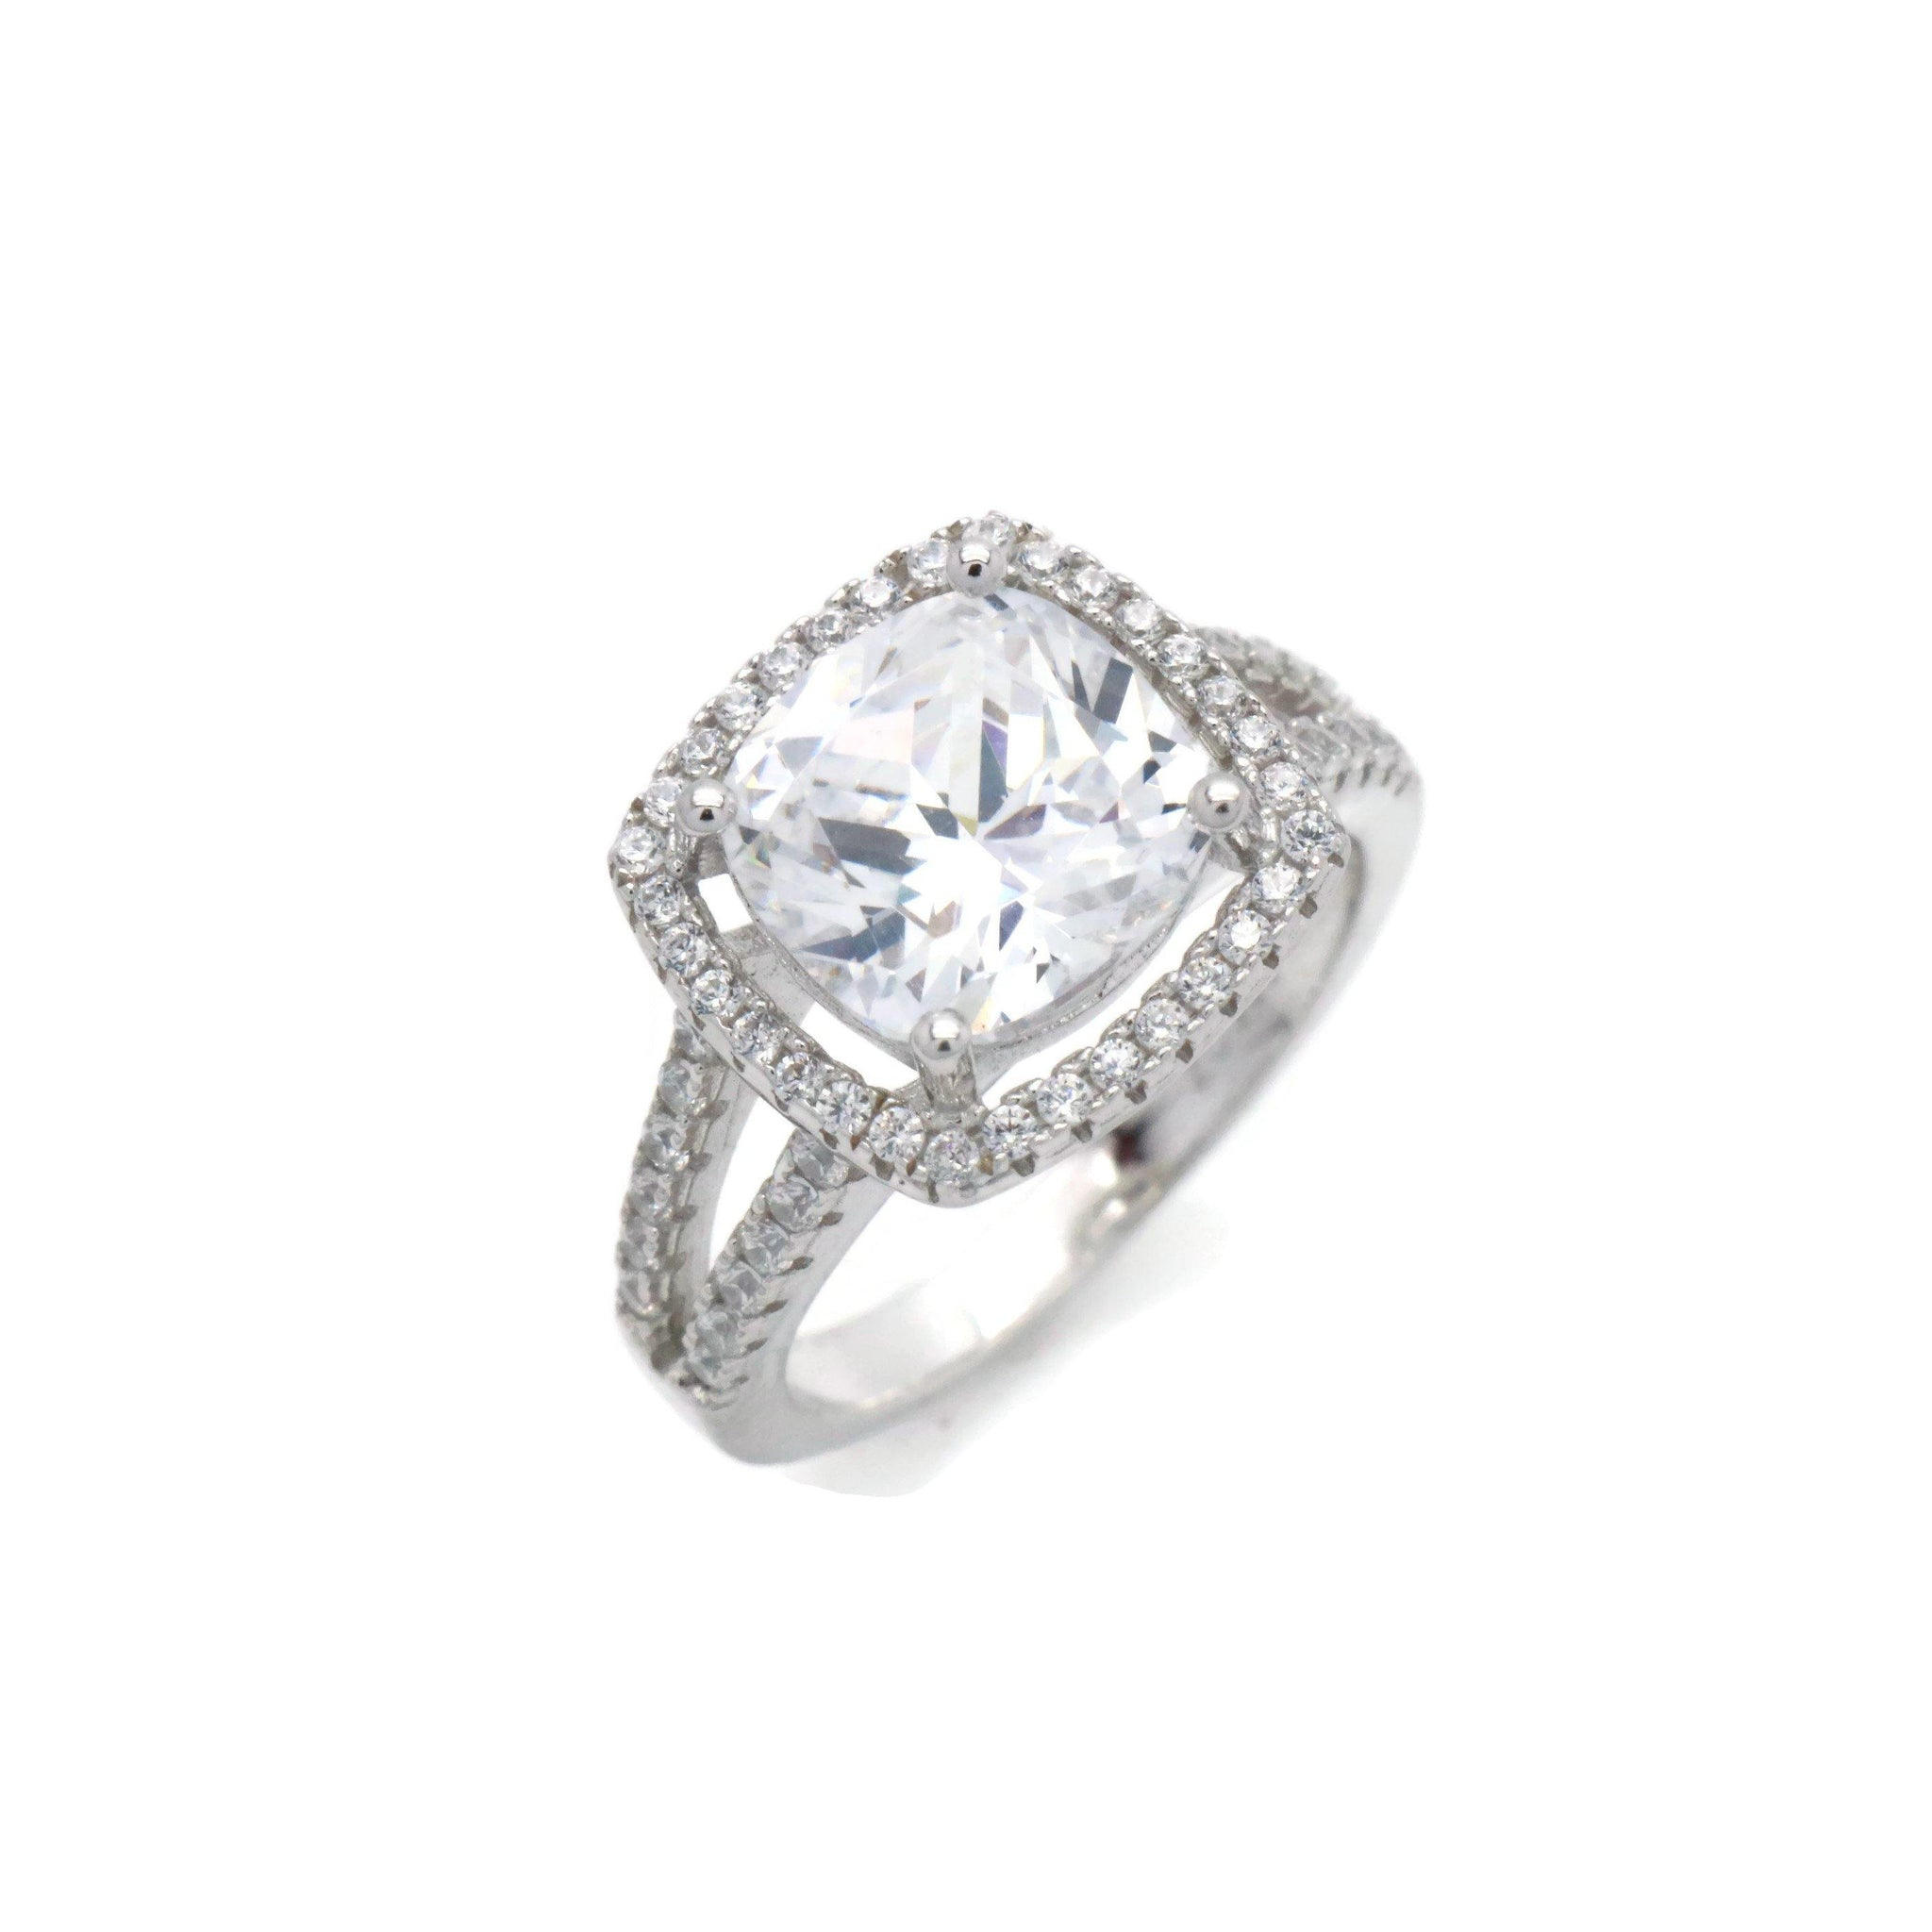 Cubic Zirconia Cushion Halo Ring 925 Sterling Silver